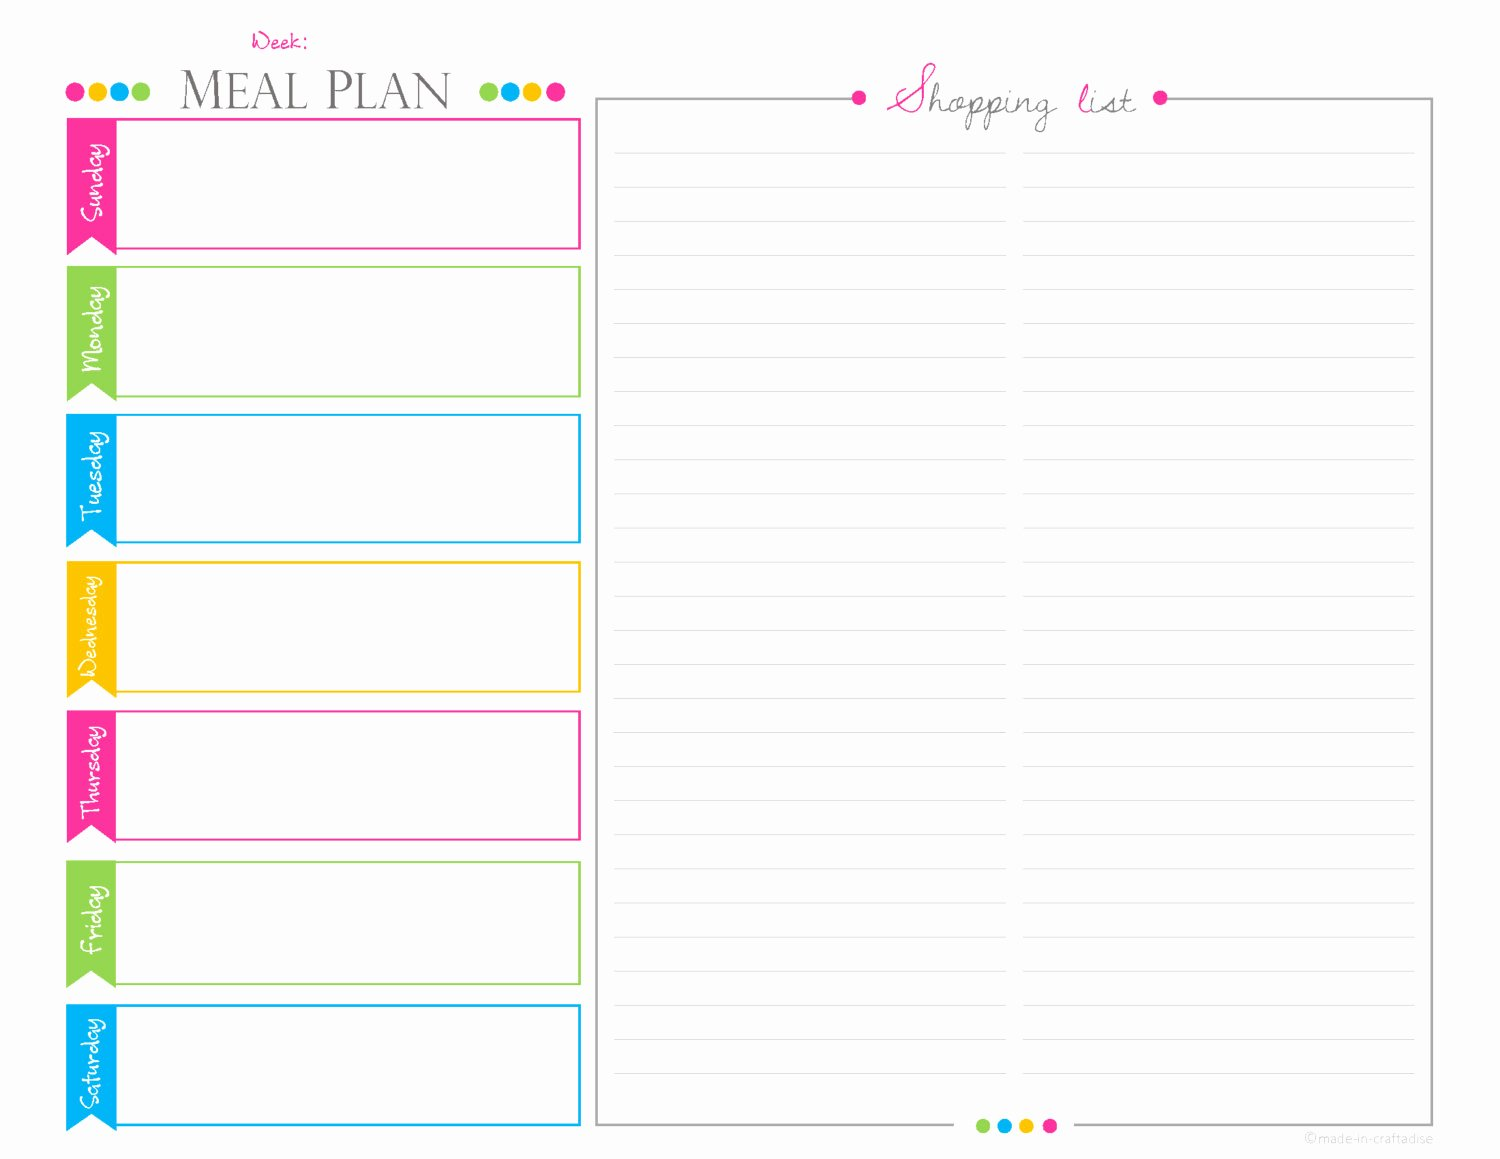 Meal Plan Template Pdf Best Of Weekly Meal Planningshopping List Pdf Planner Landscape